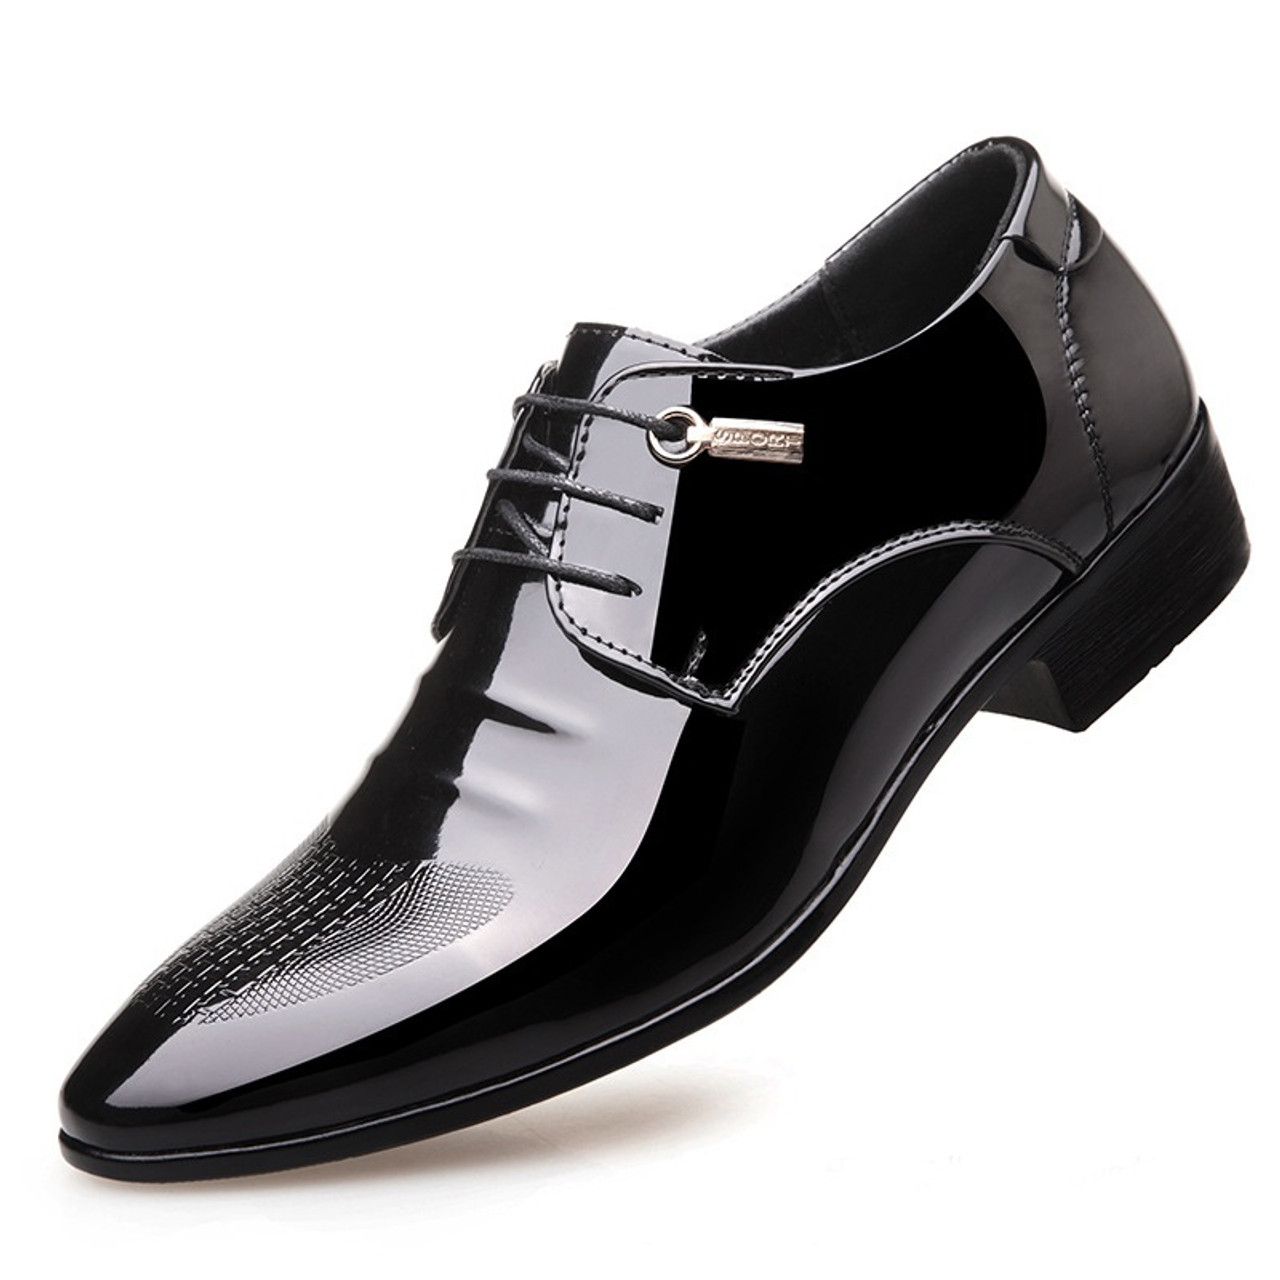 f5daadb783 ... Mens Work Business Casual Leather Shoes Smart Dress Formal Wedding Flat  Loafers ...